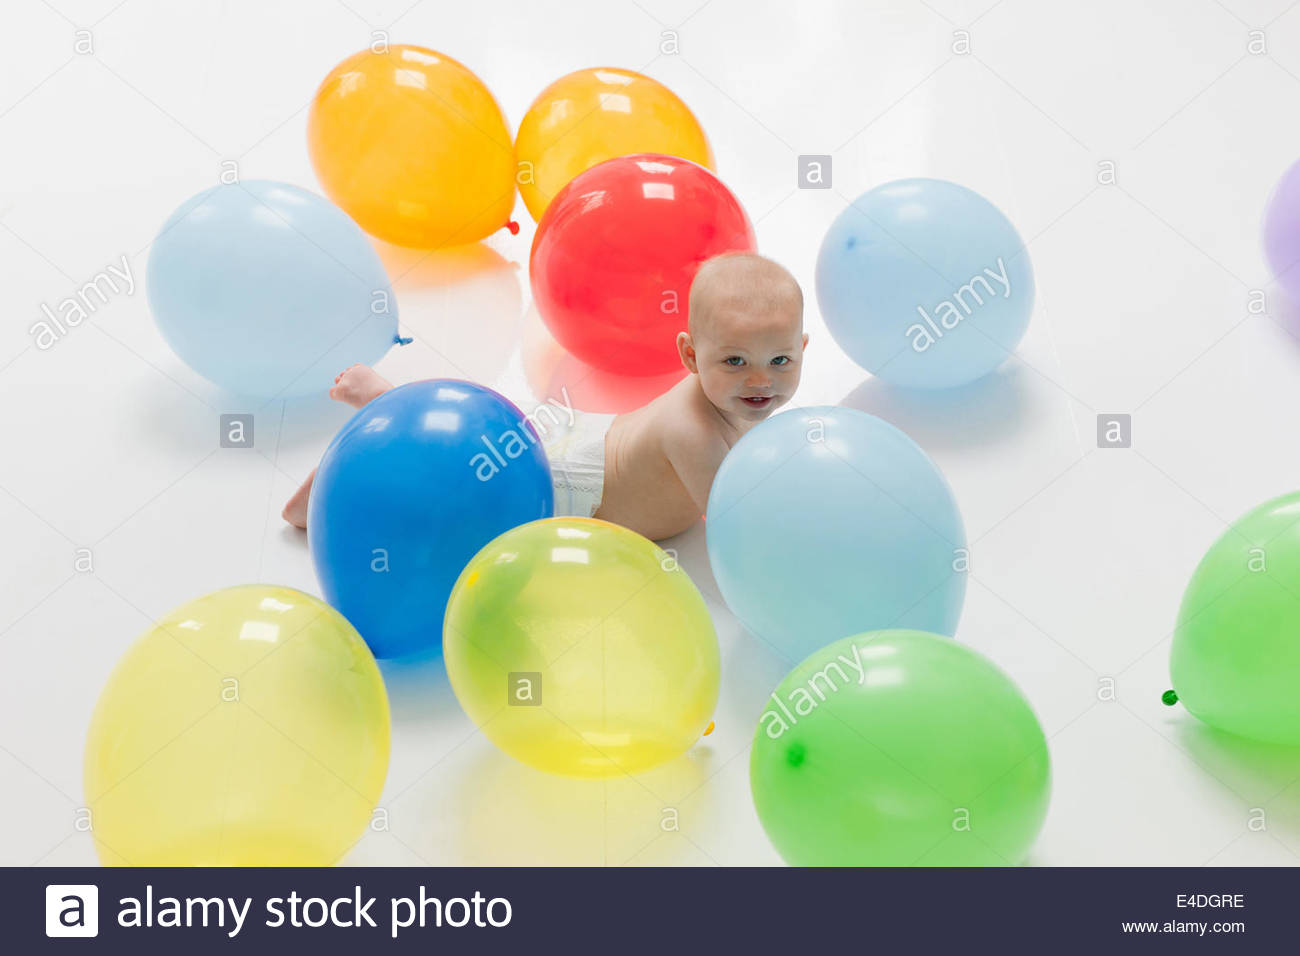 Baby laying on floor with balloons Stock Photo